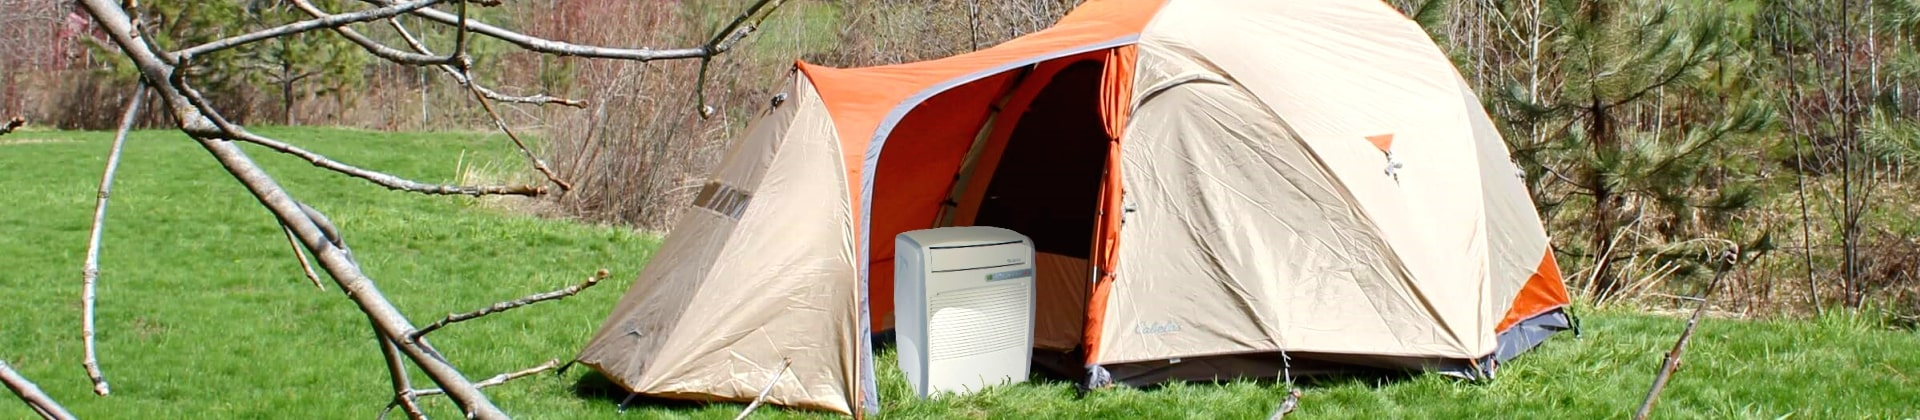 Best Tent Air Conditioners Reviewed in Detail